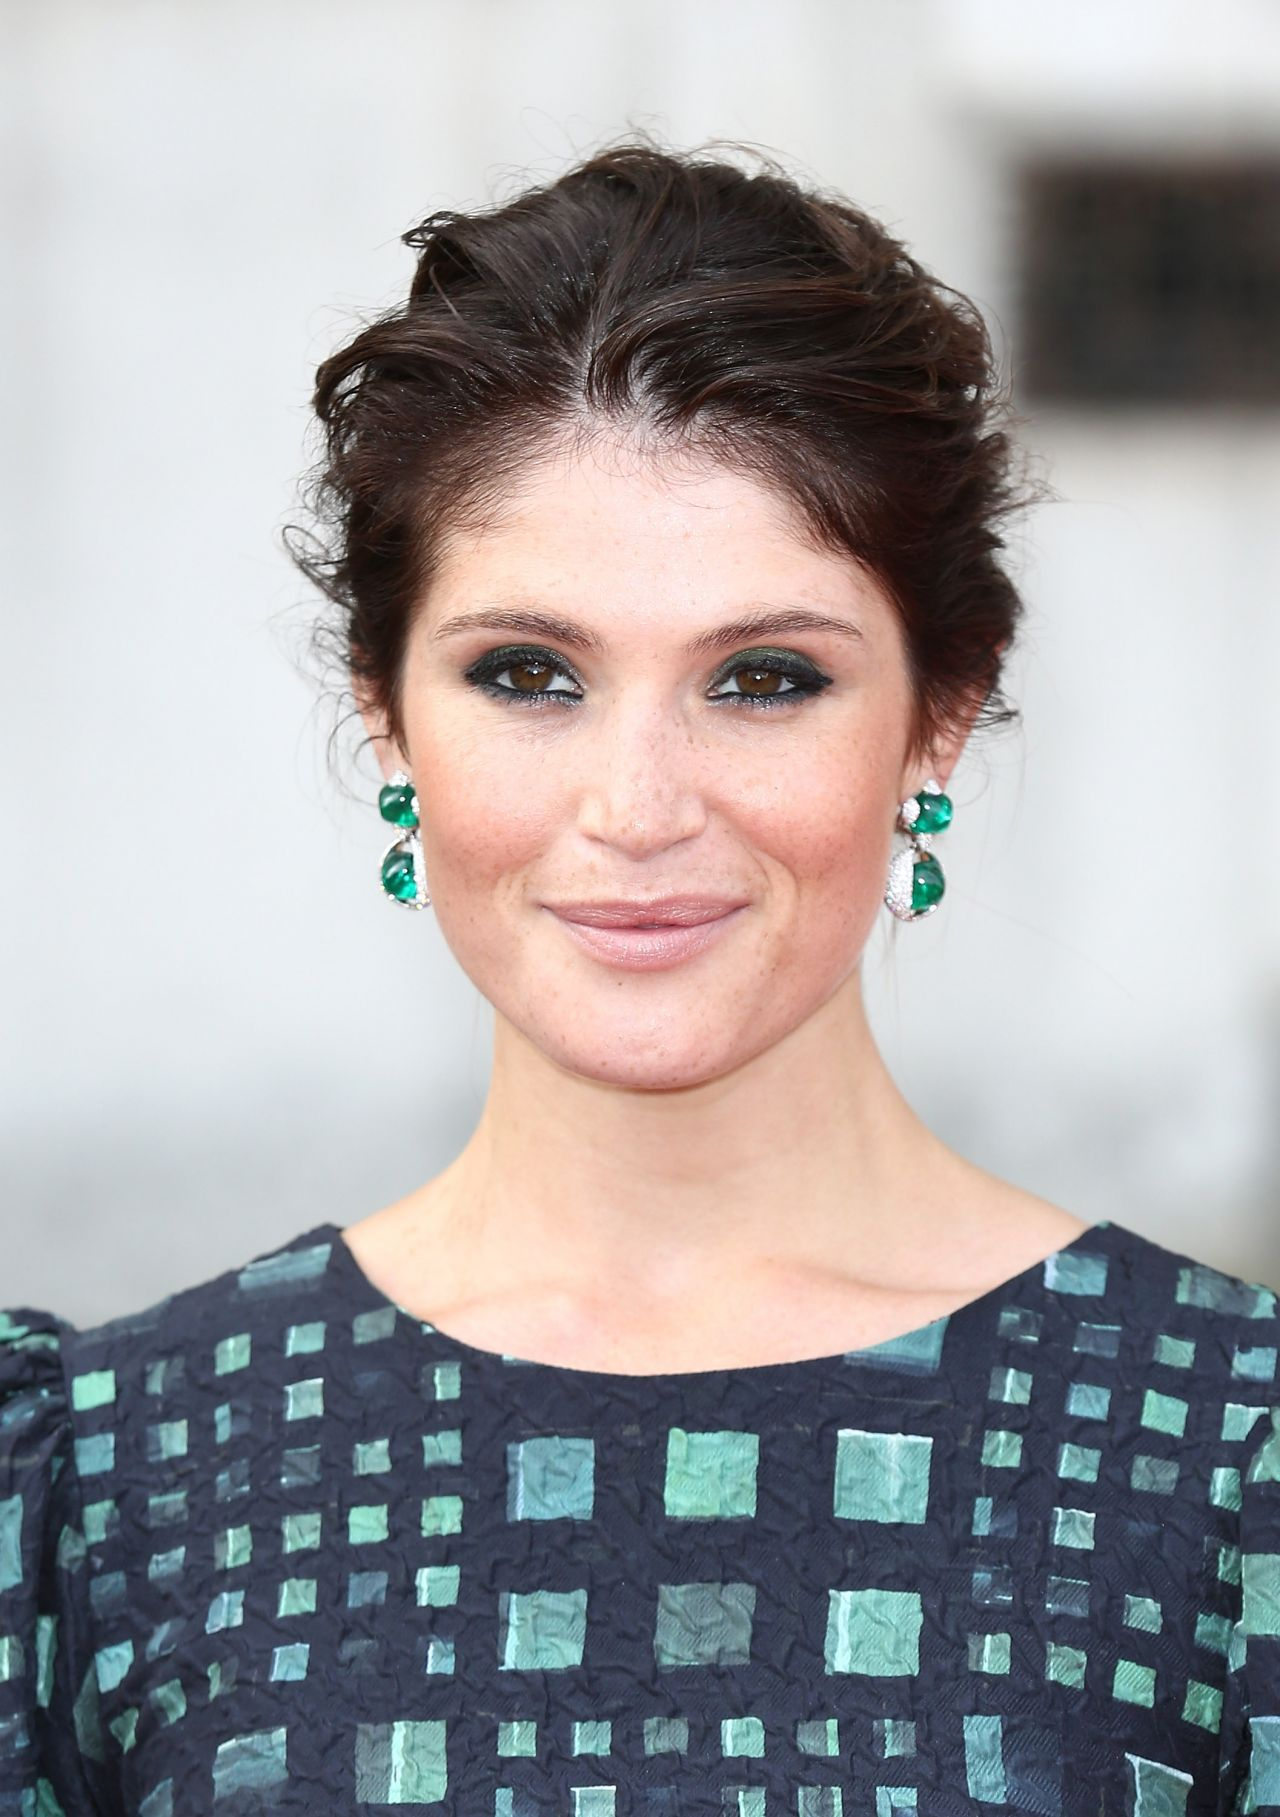 gemma-arterton-in-saloni-gemma-bovery-london-premiere/